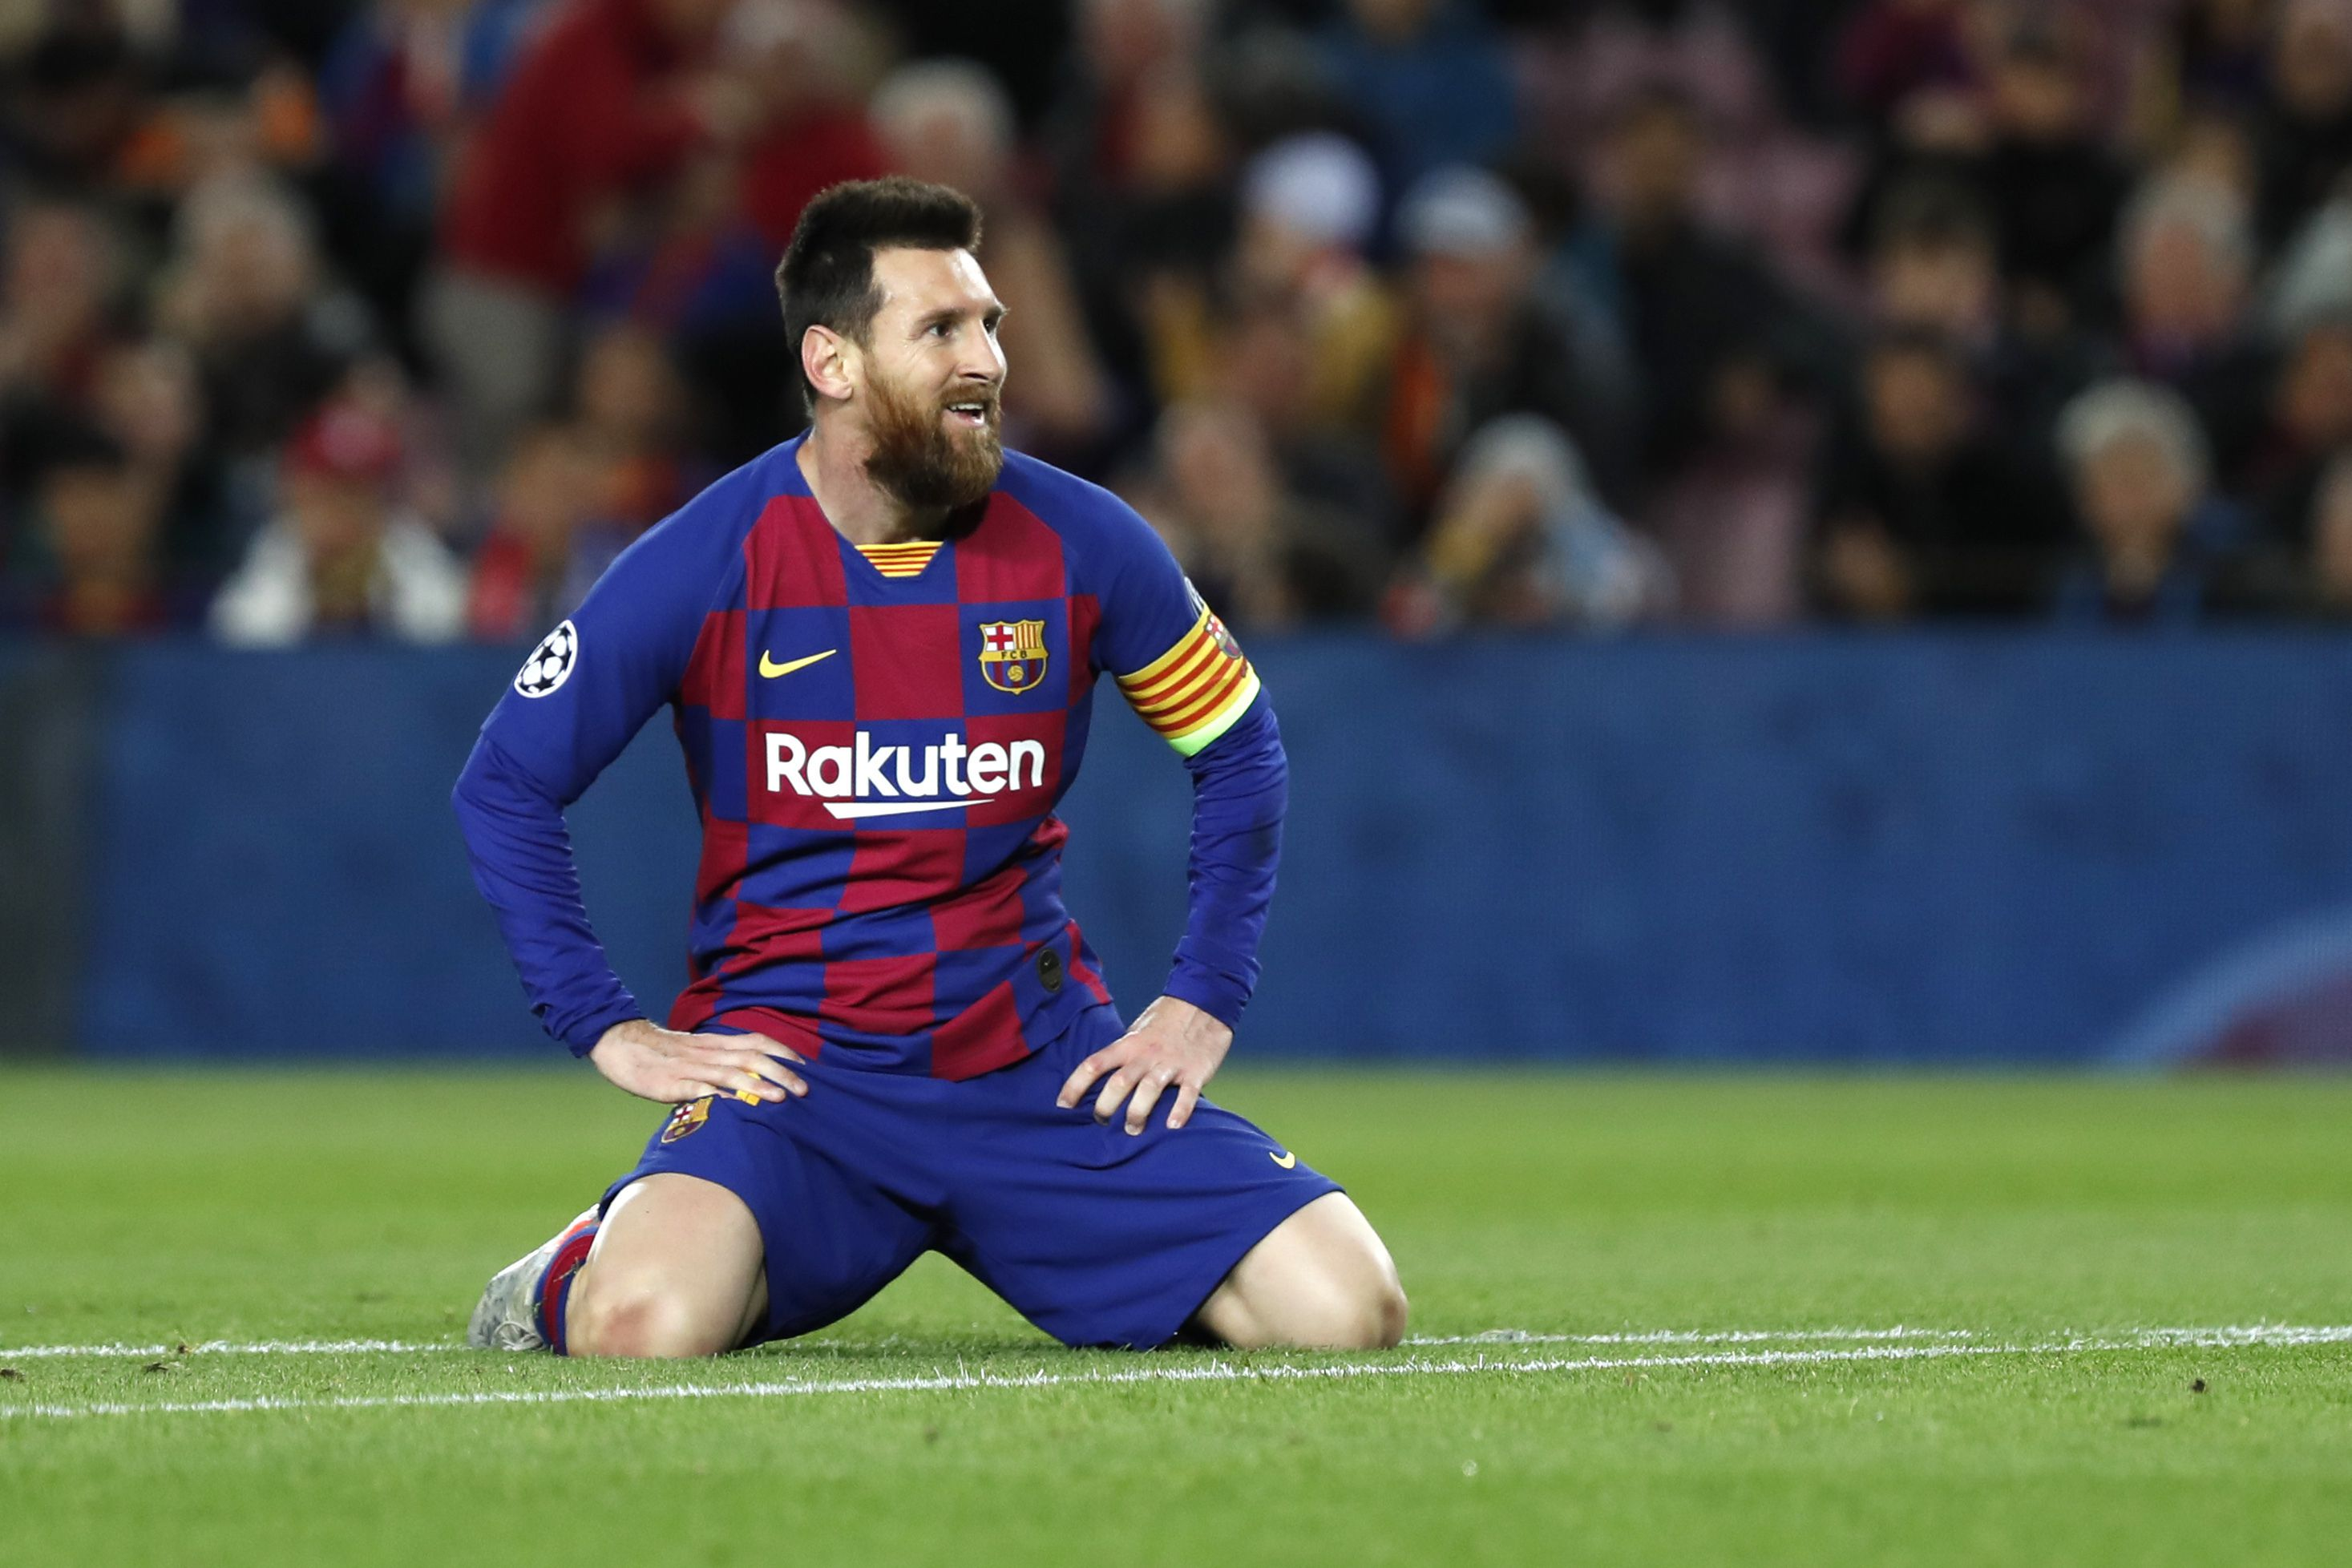 Lionel Messi Tells Barcelona That He Intends To Leave The Club The Boston Globe